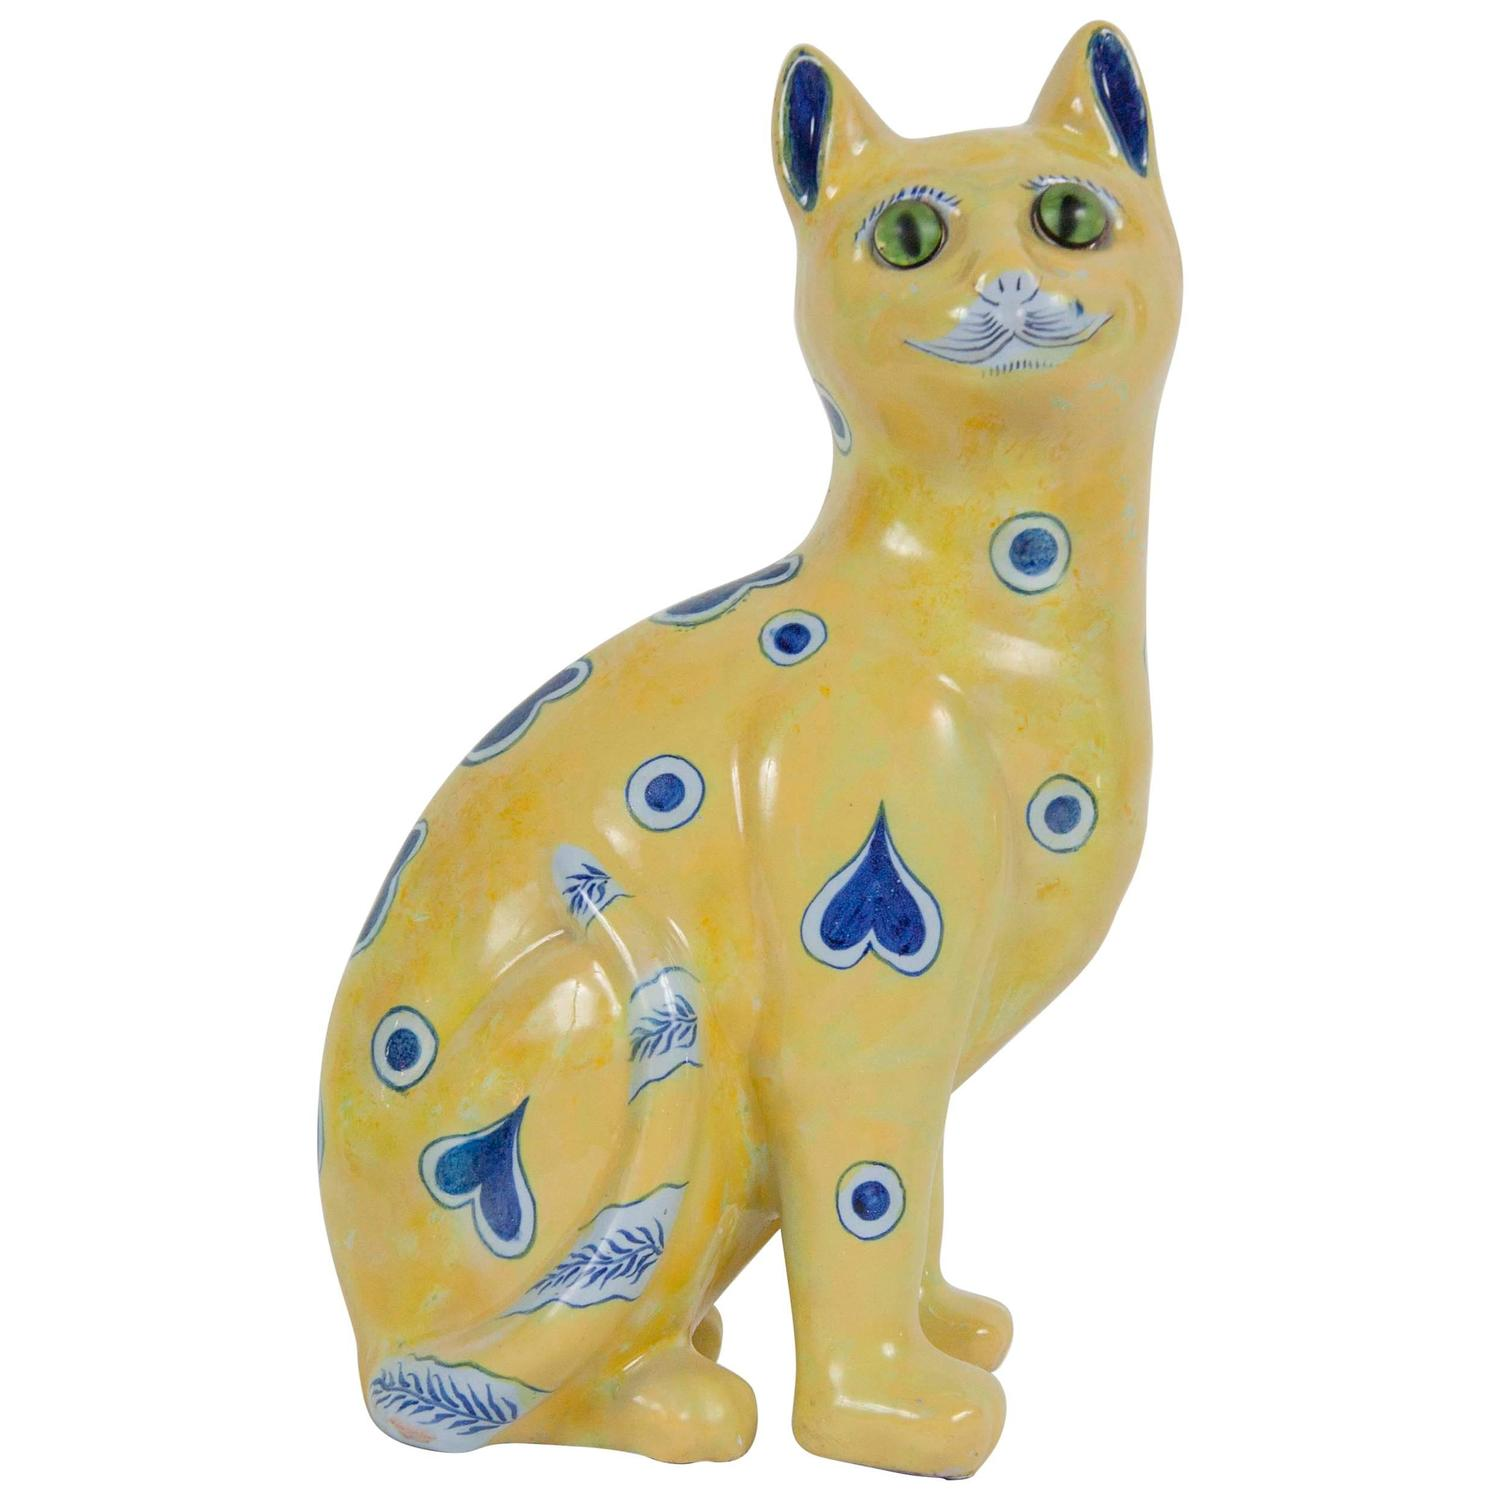 Ceramic Cats - 64 For Sale on 1stdibs